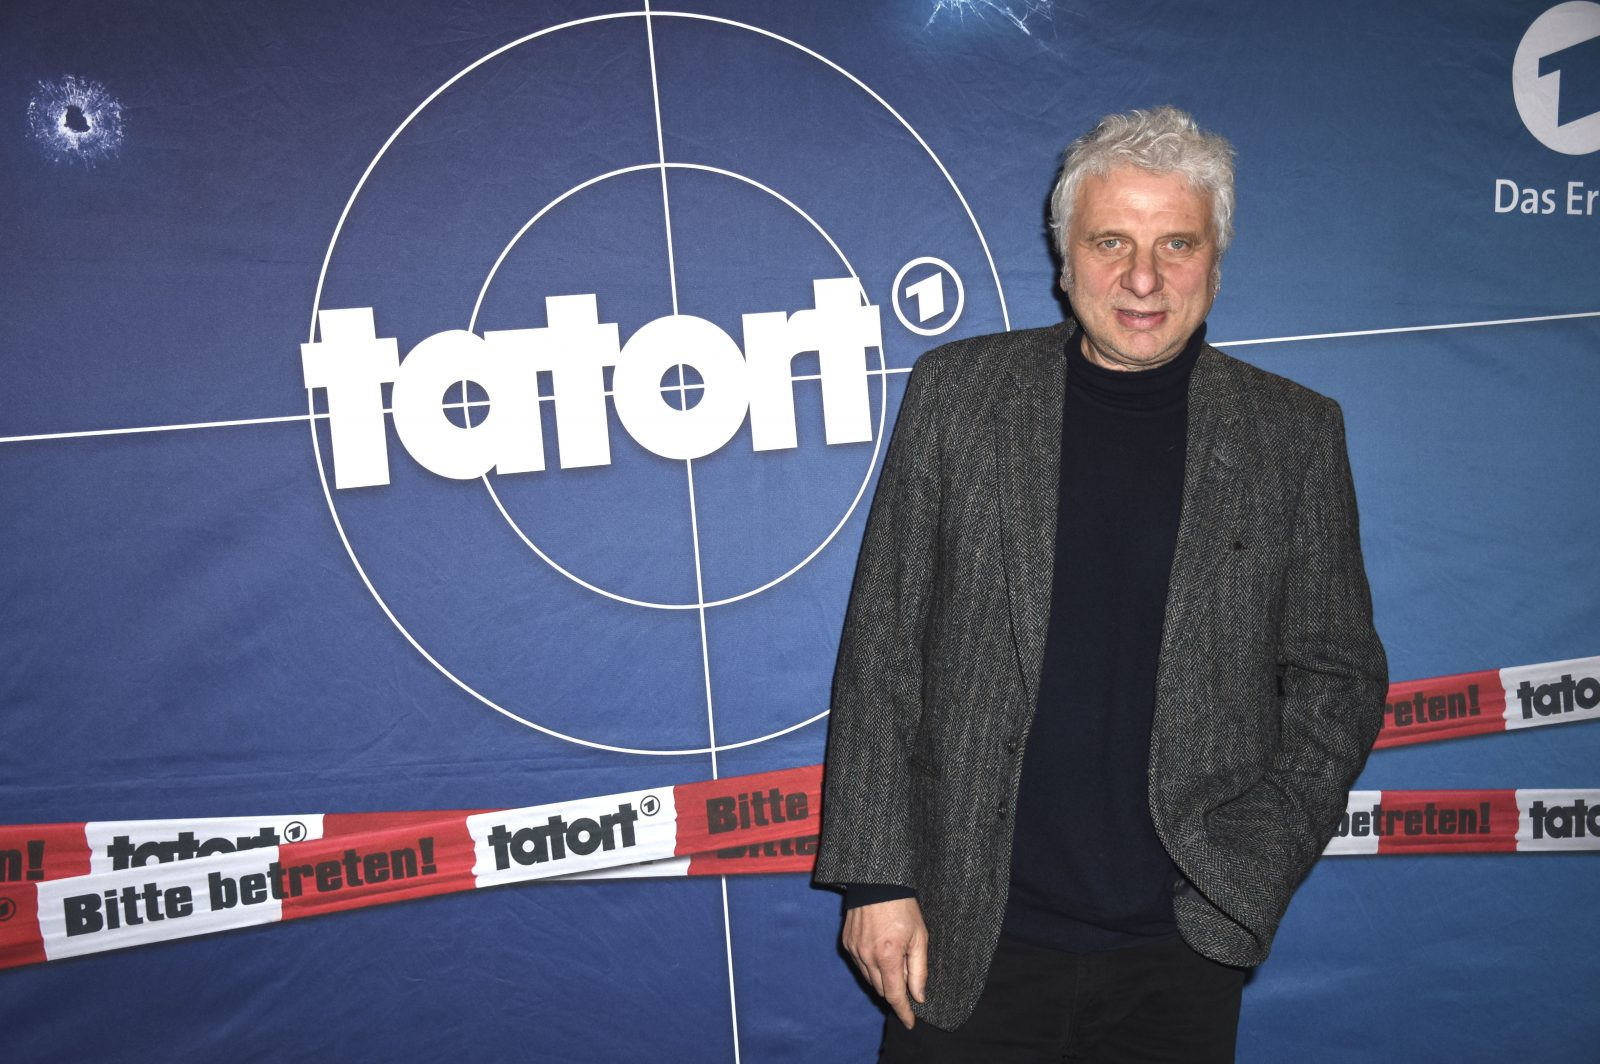 "Der Schauspieler Udo Wachtveitl äußert sich kritisch über die Macher der Krimiserie ""Tatort"" Foto: picture alliance/Geisler-Fotopress"